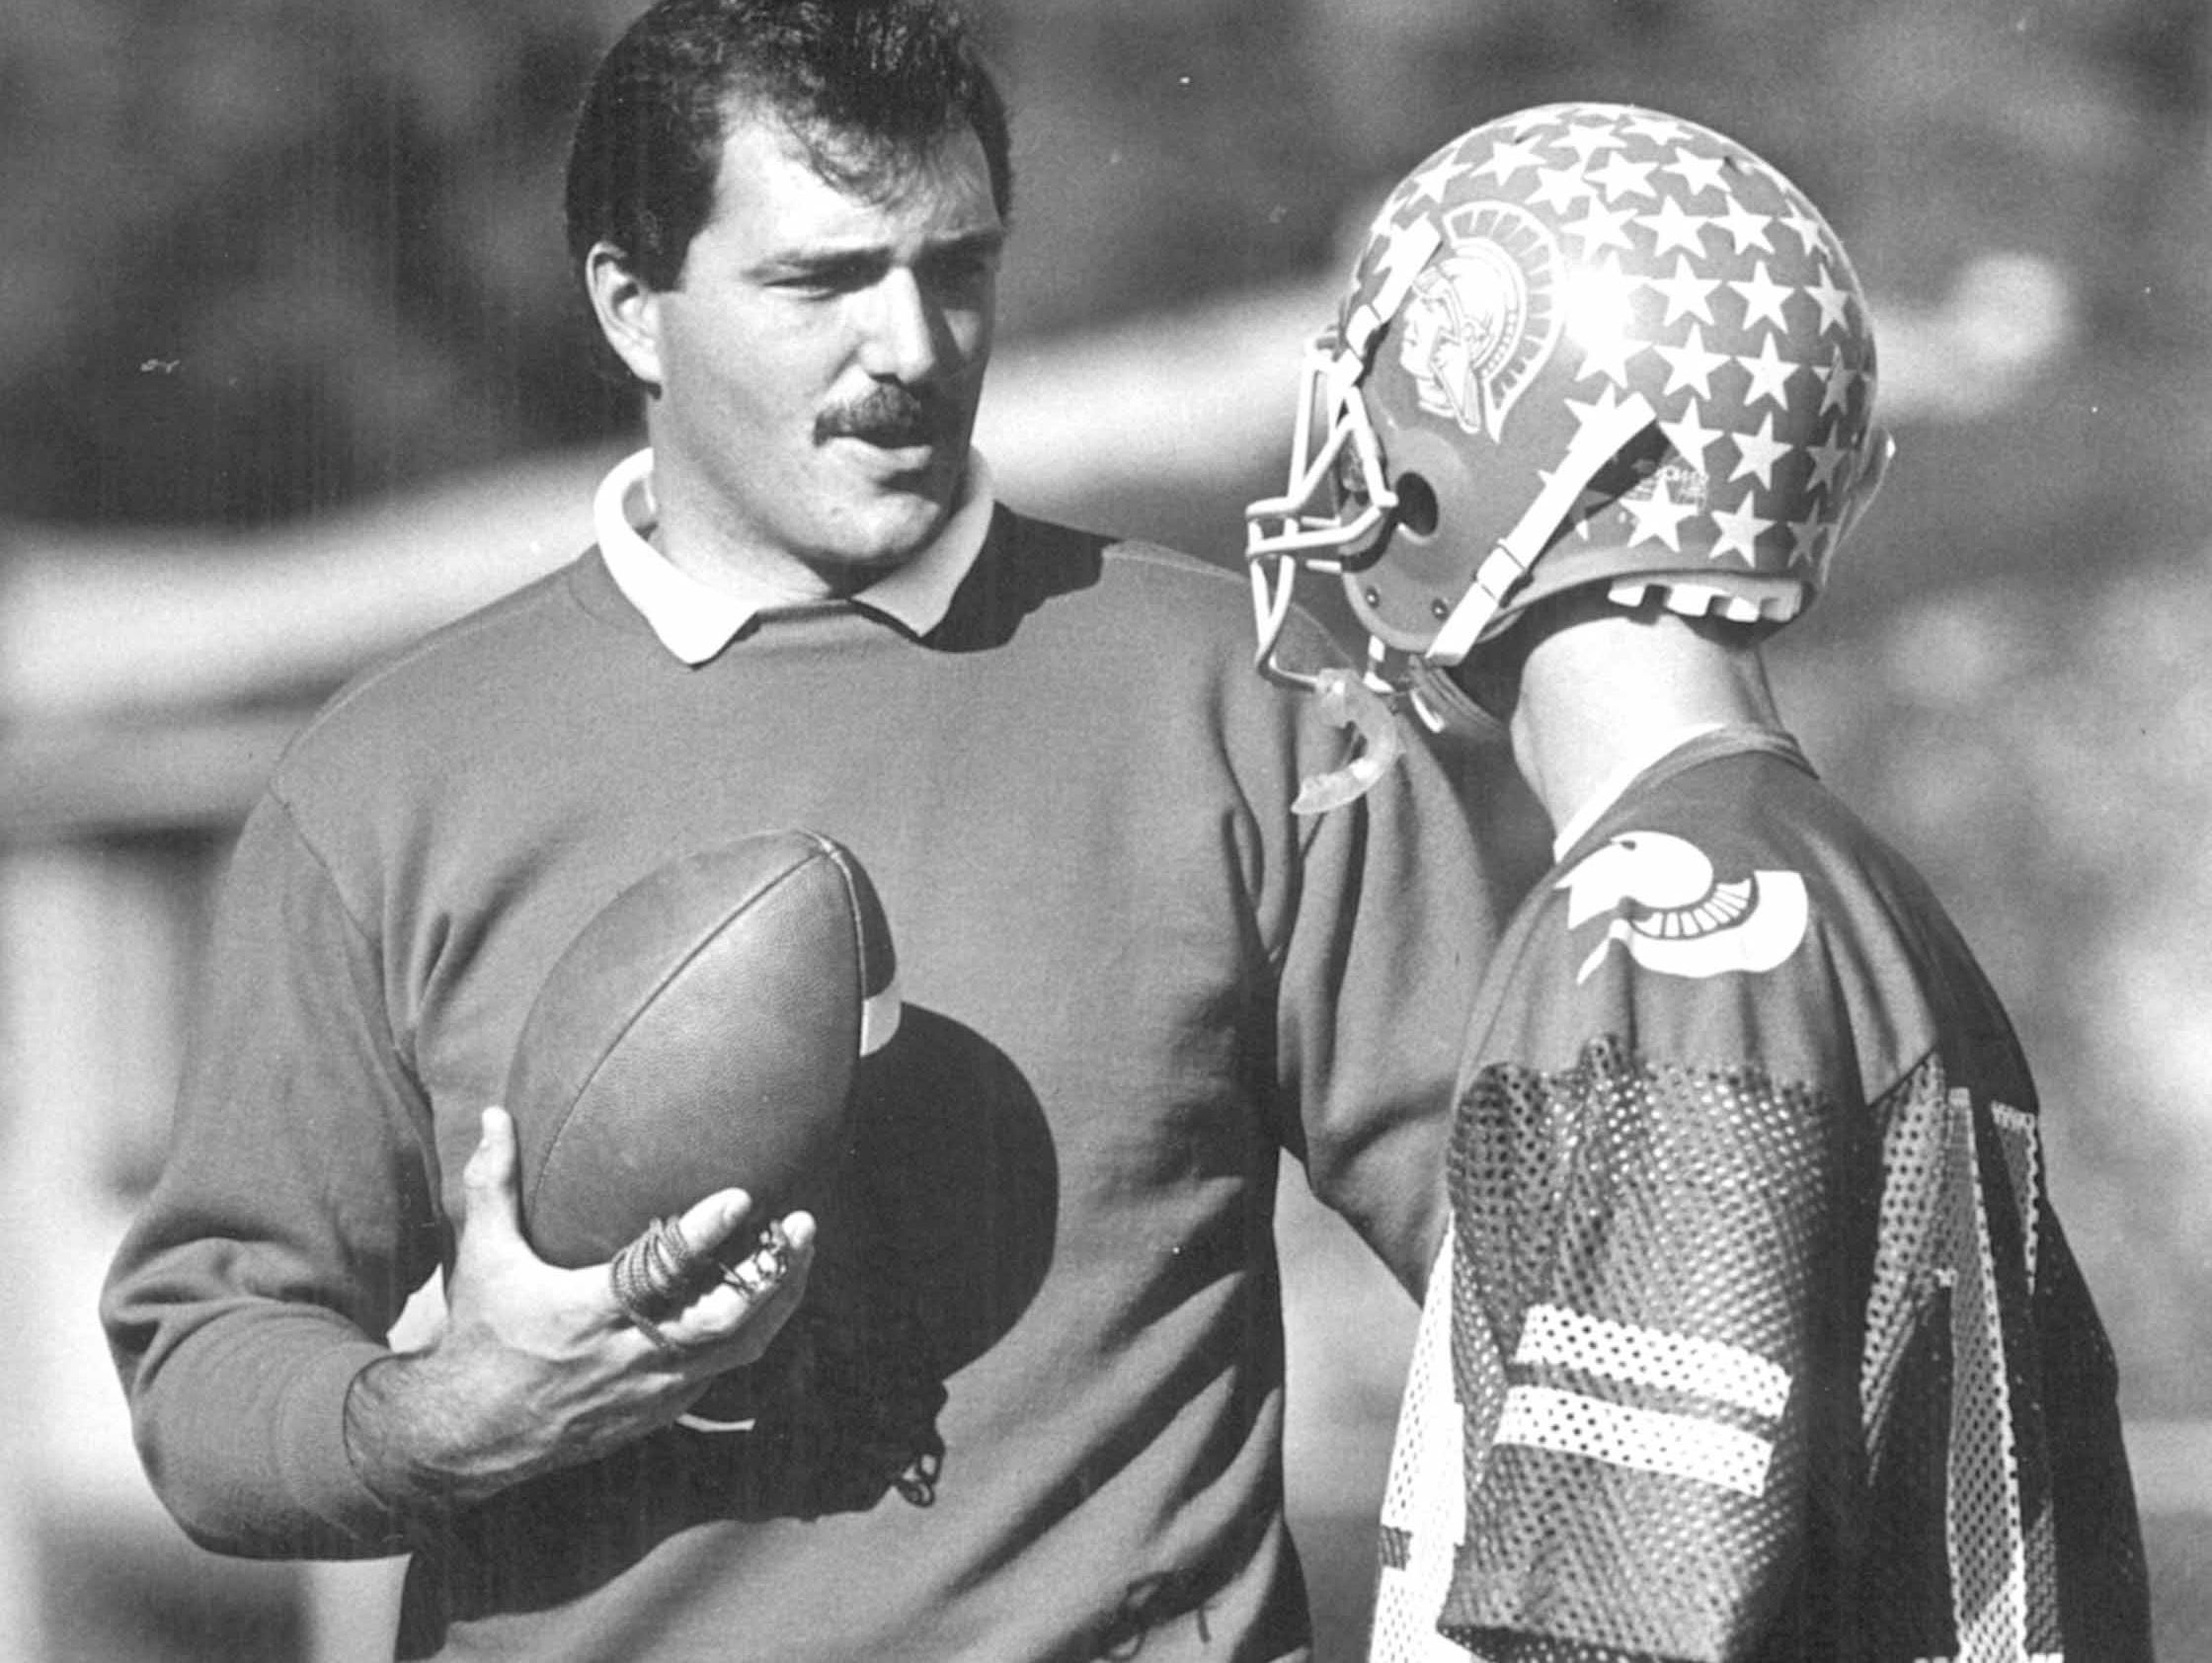 North College Hill coach Bruce Baarendse talking with receiver Rick Kates in 1987.